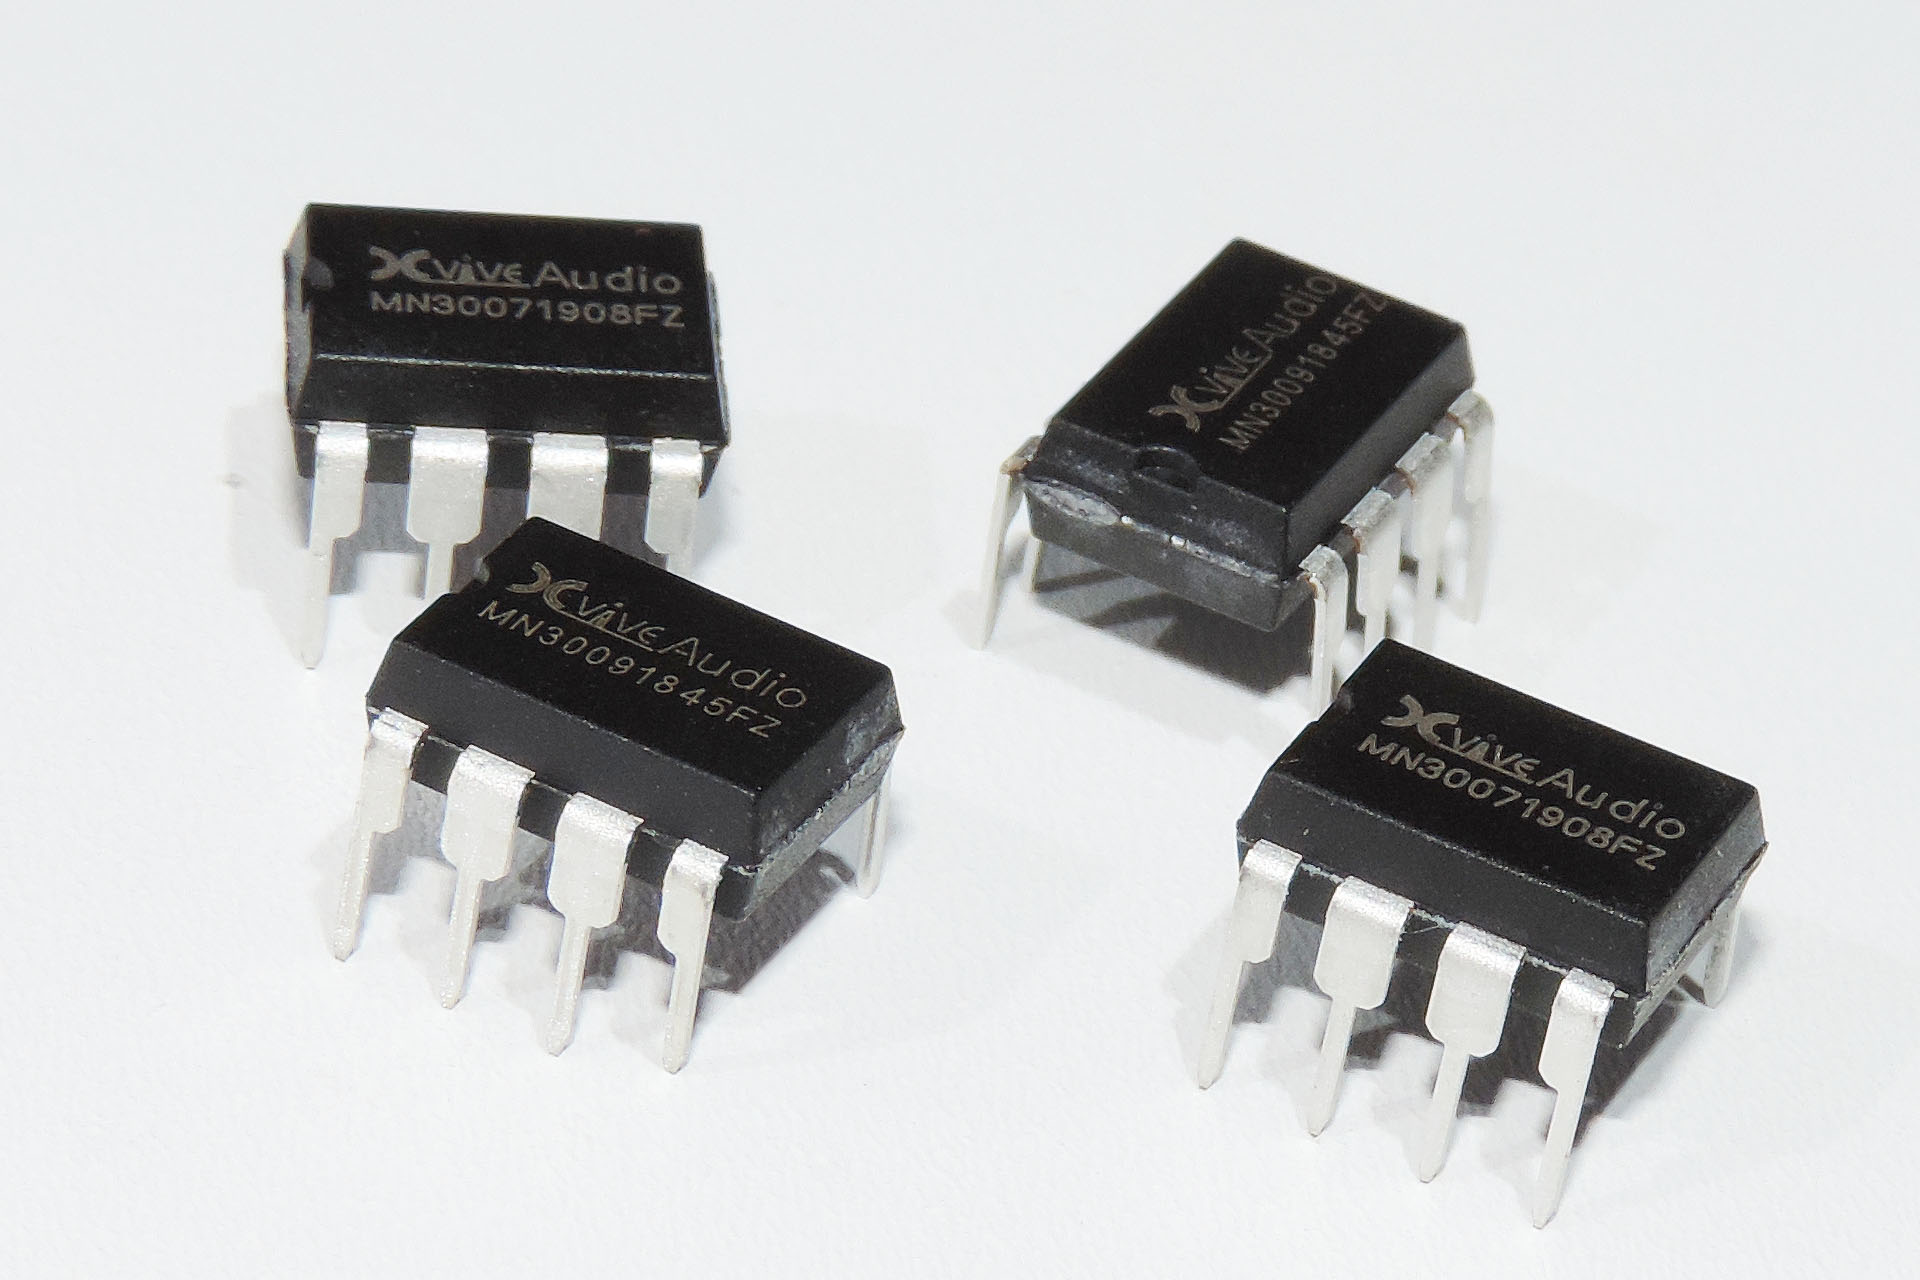 Xvive MN3007 and MN3009 bucket brigade delay-lines